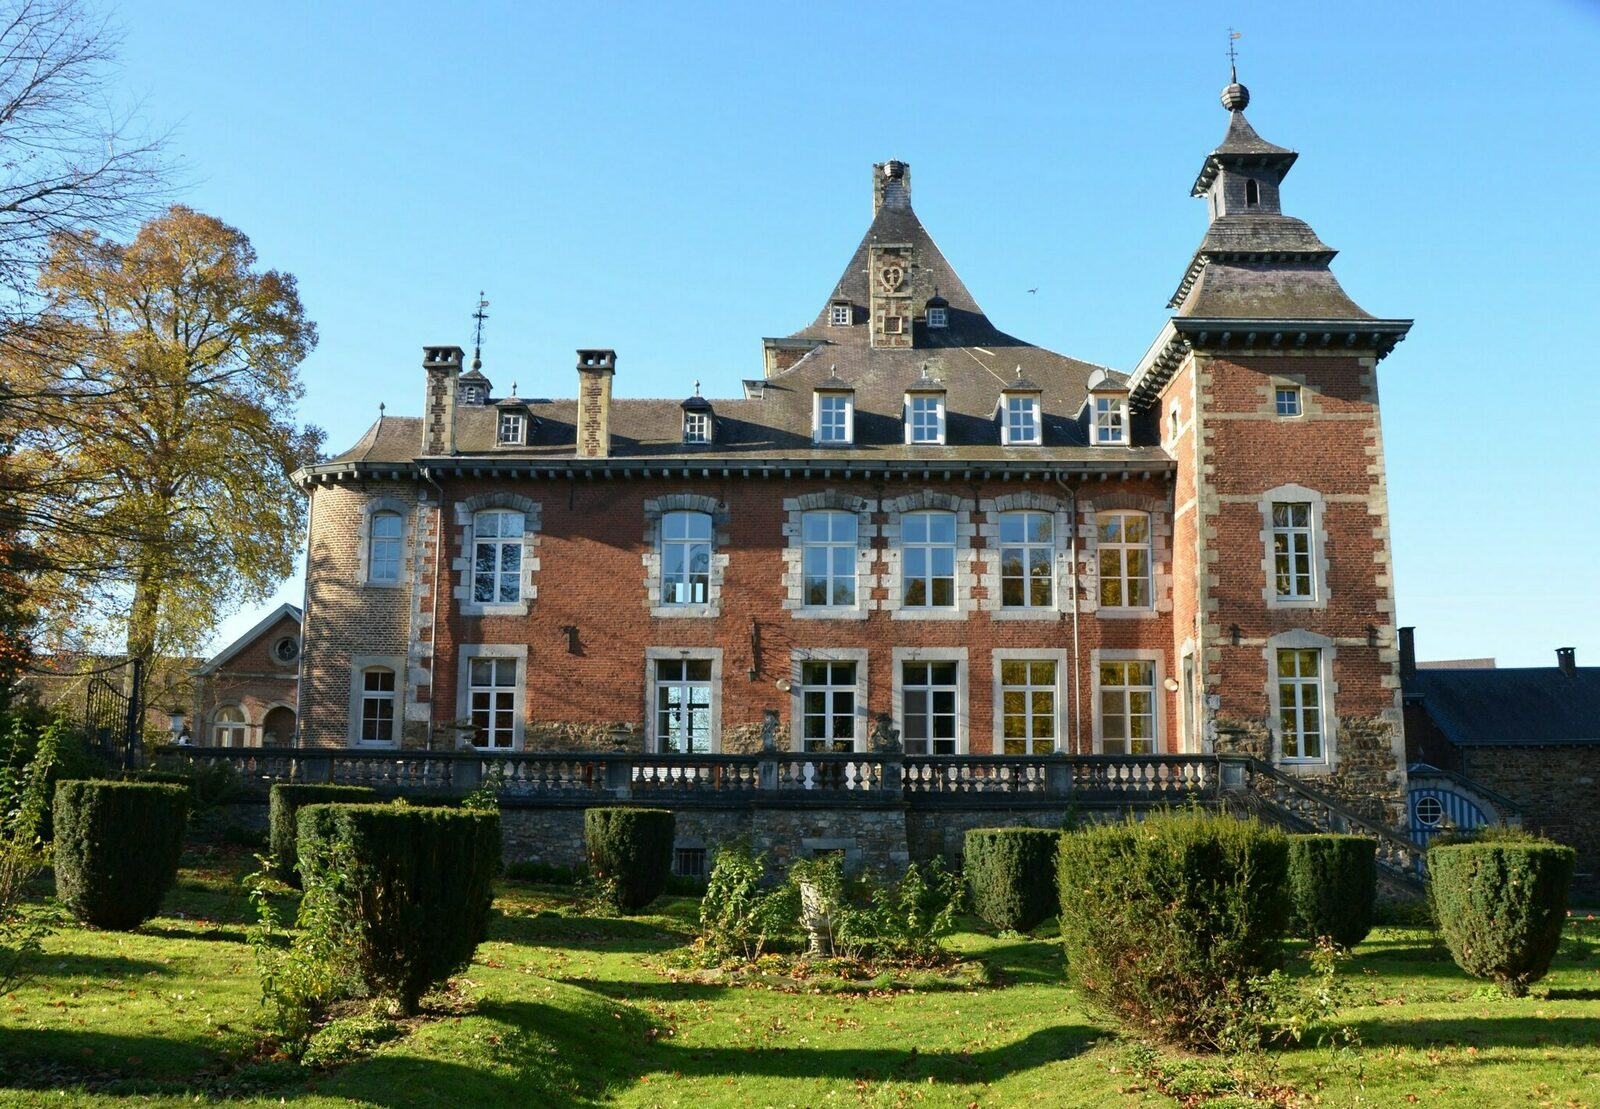 Chateau Cortils - Bordesappartement